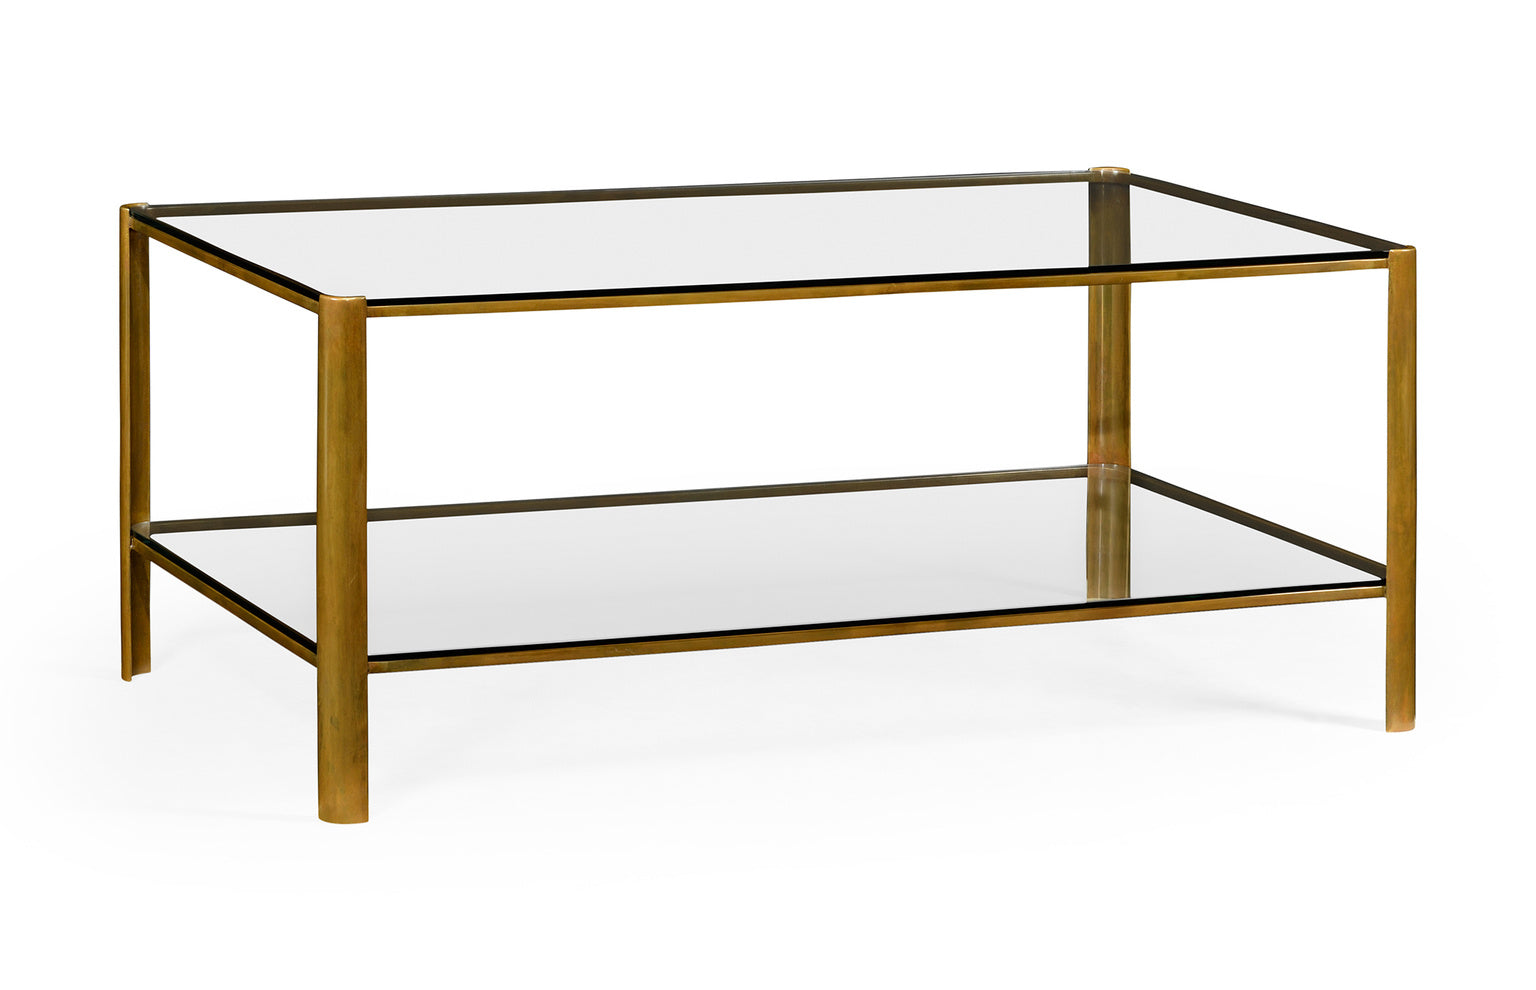 Picture of: Burnished Brass Coffee Table With 2 Glass Shelves Tempered Glass English Country Home